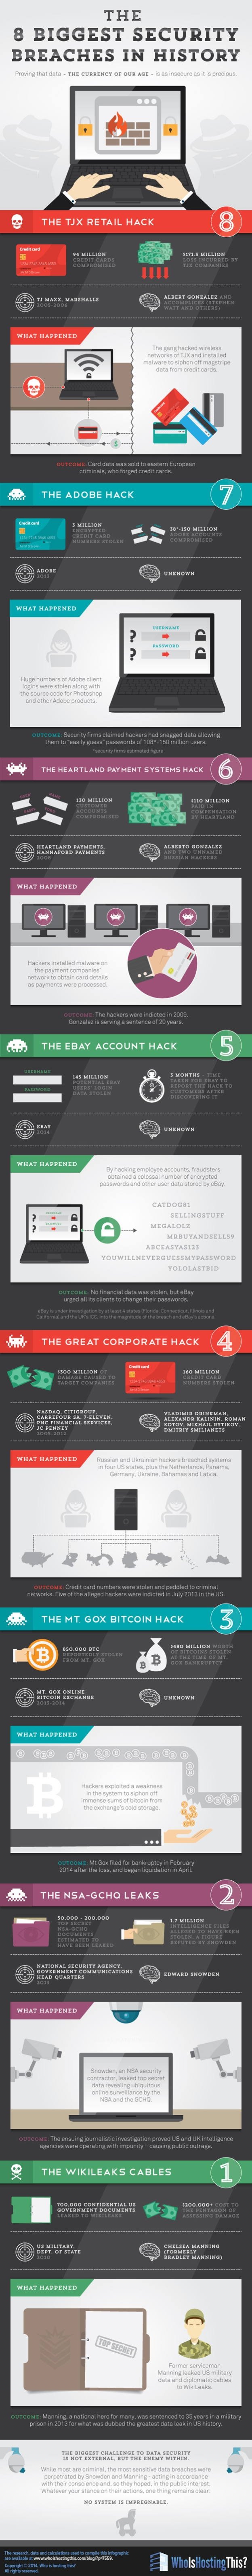 top-8-worst-security-breaches